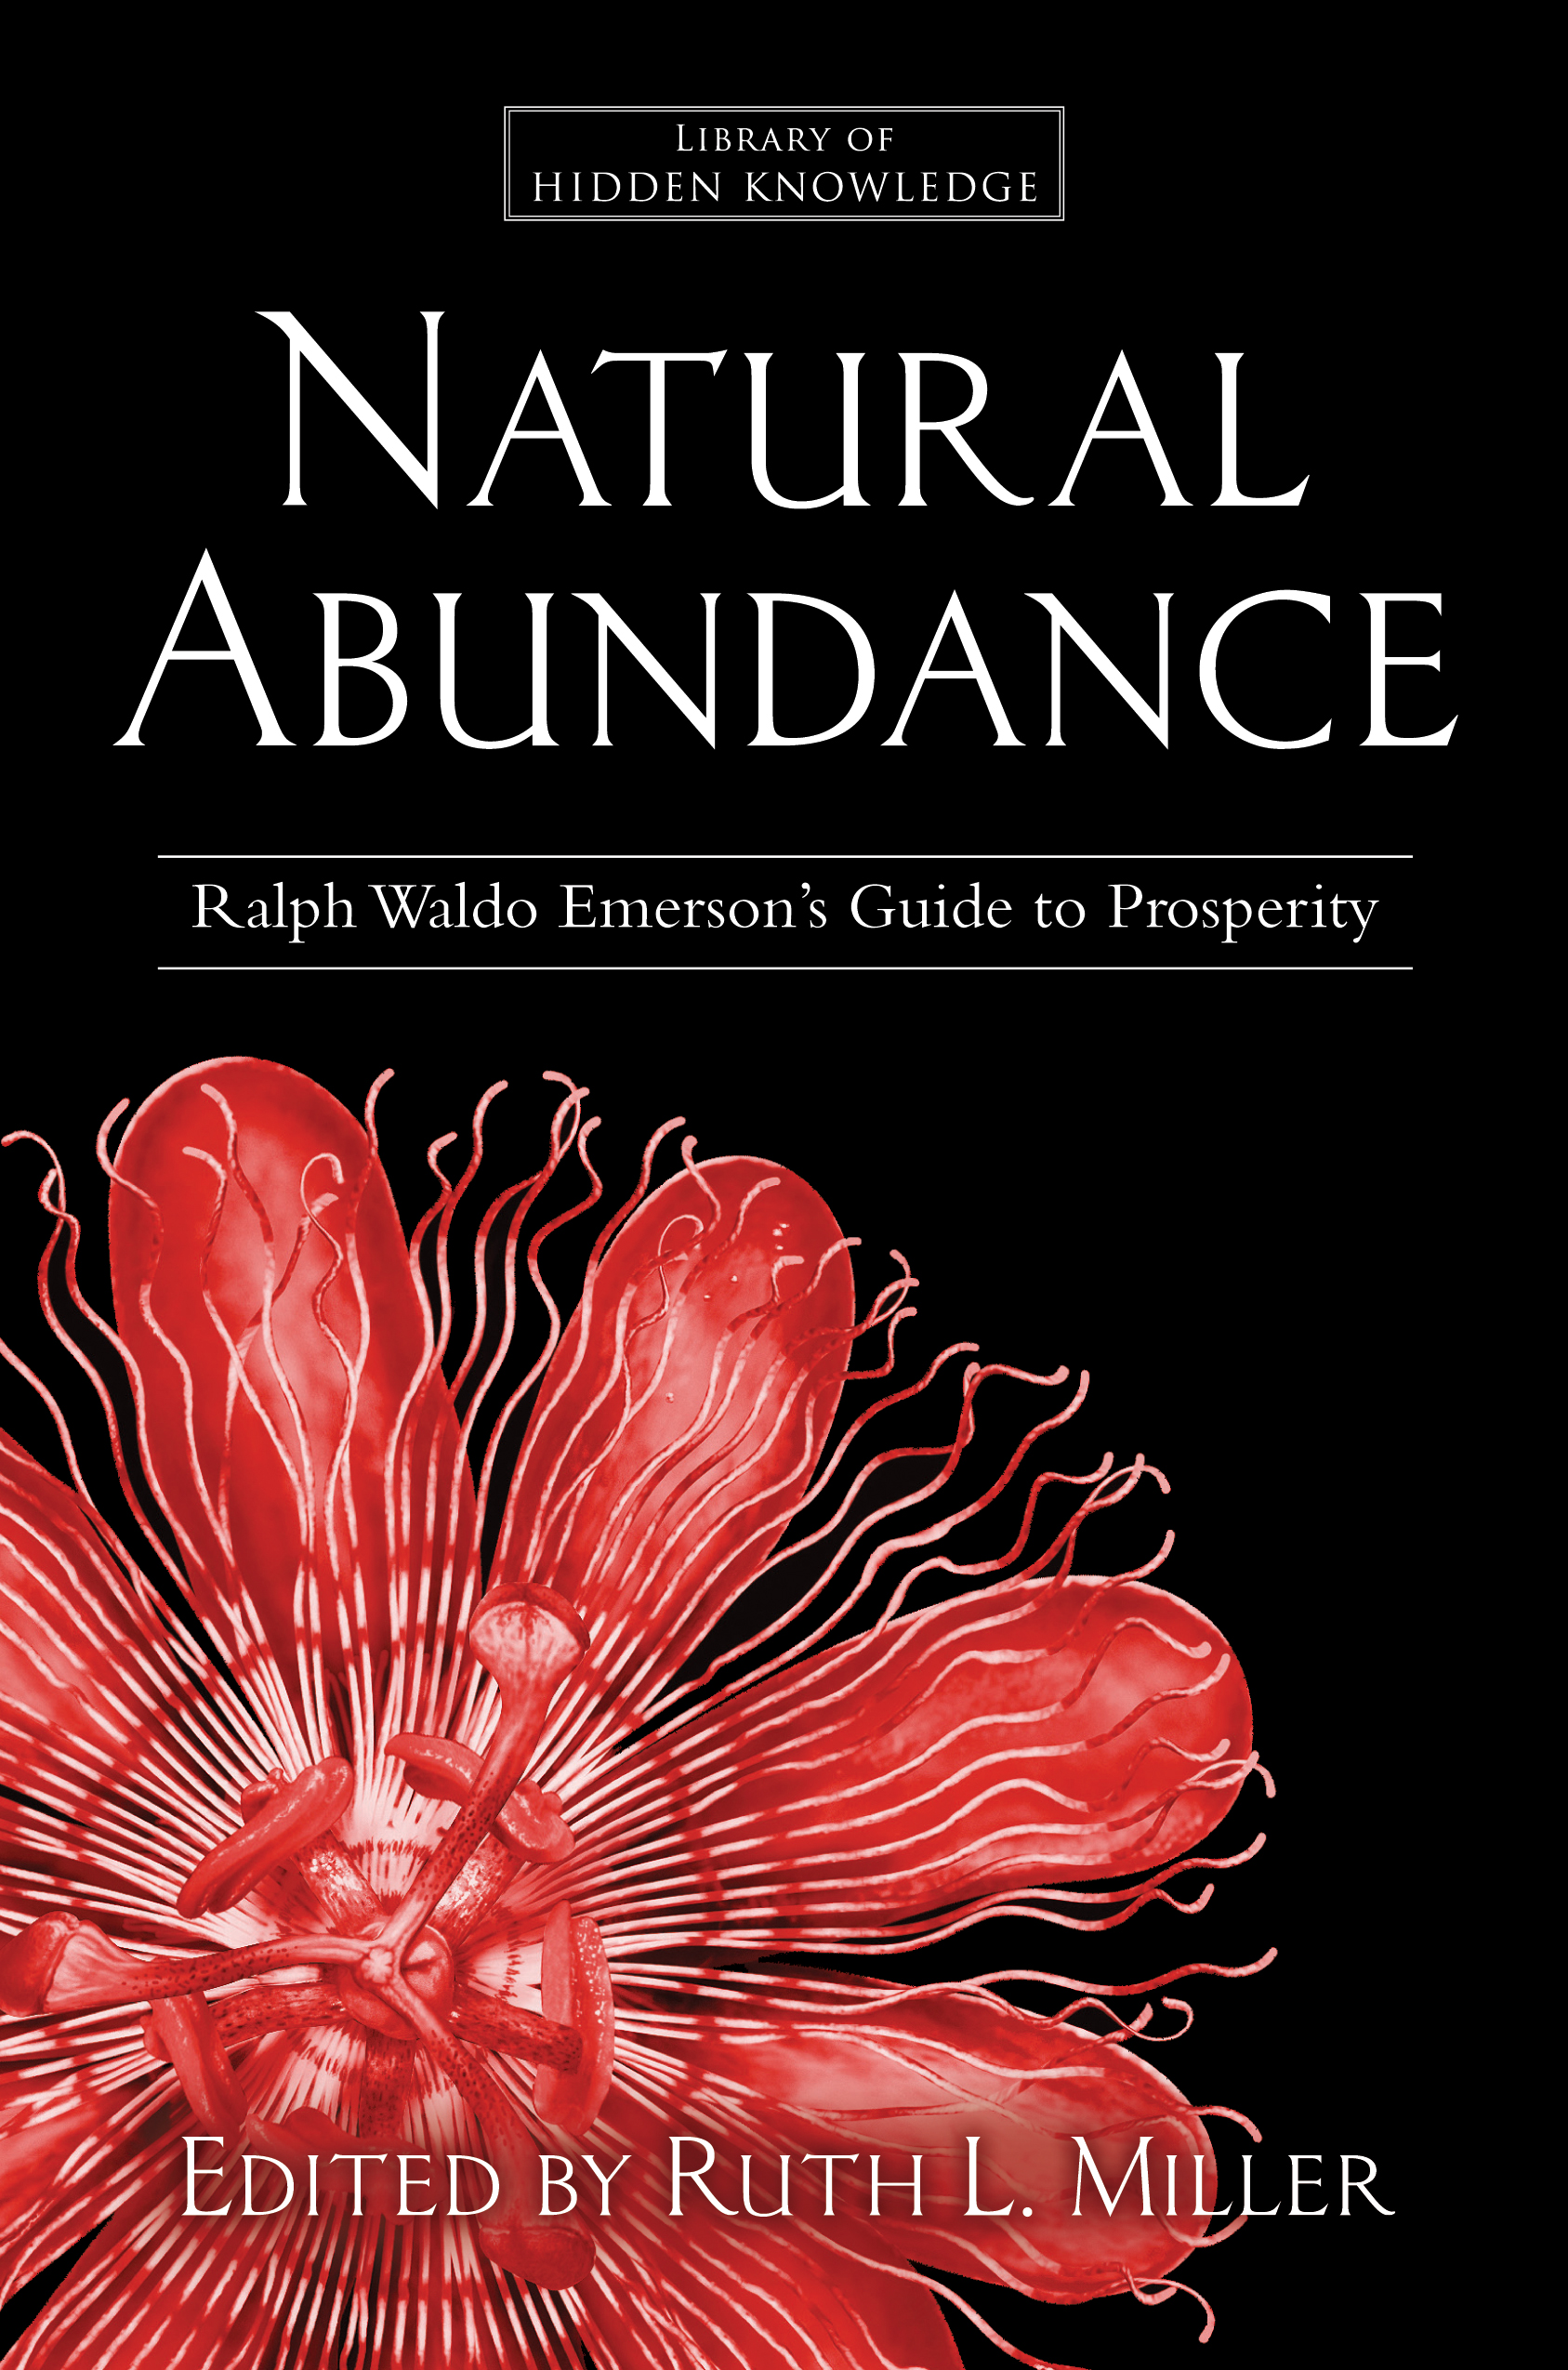 natural abundance book by ralph waldo emerson ruth l miller ralph waldo emerson s guide to prosperity natural abundance